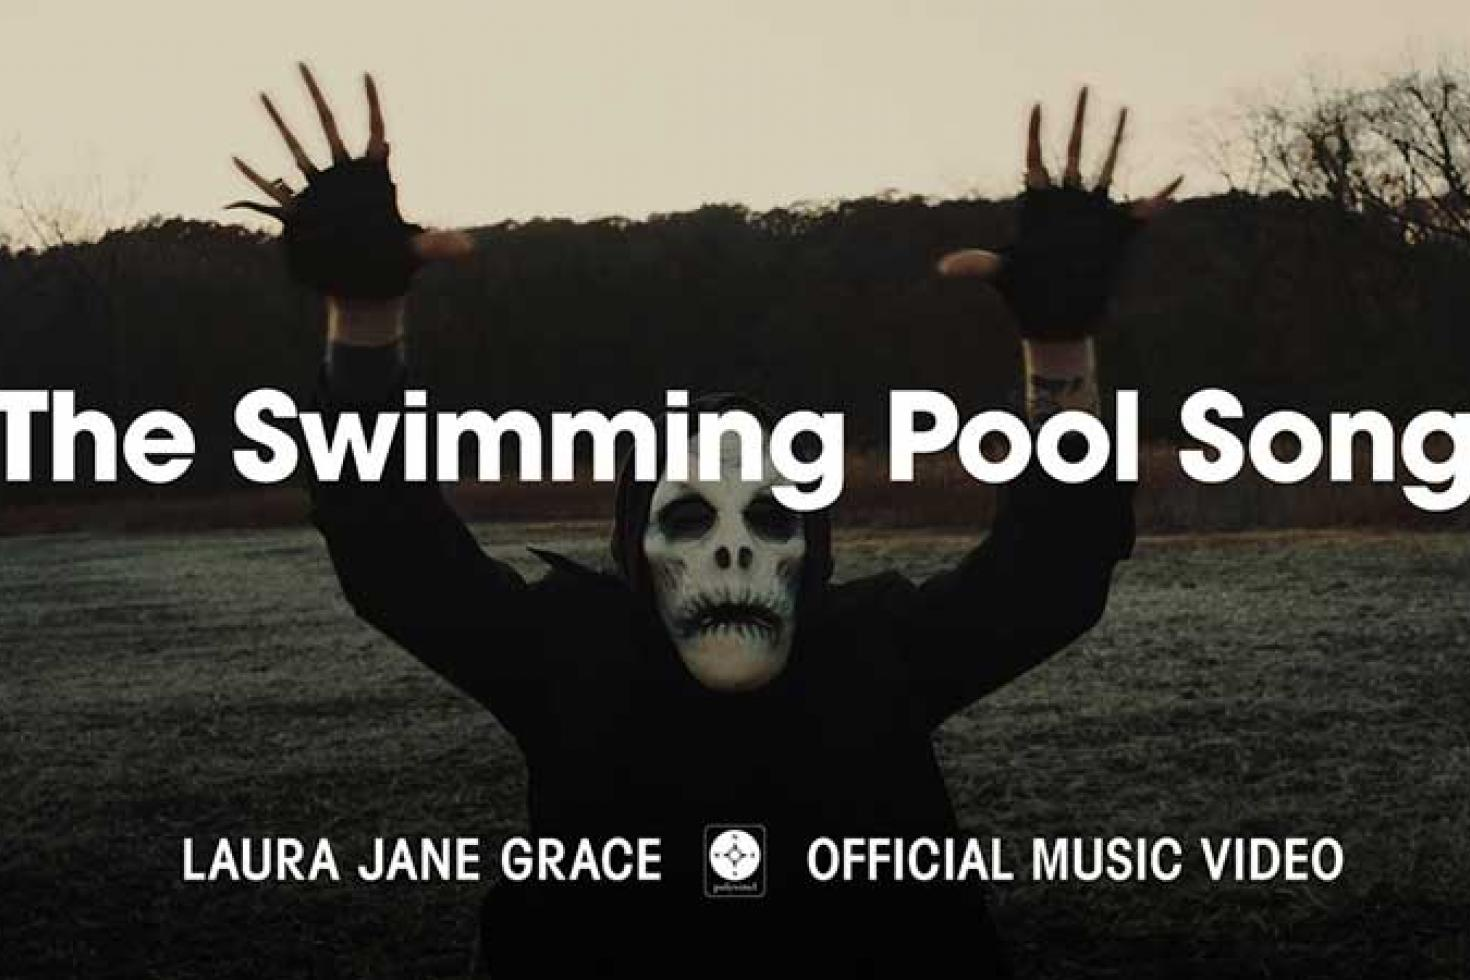 Laura Jane Grace shares NSFWFH video for 'The Swimming Pool Song'